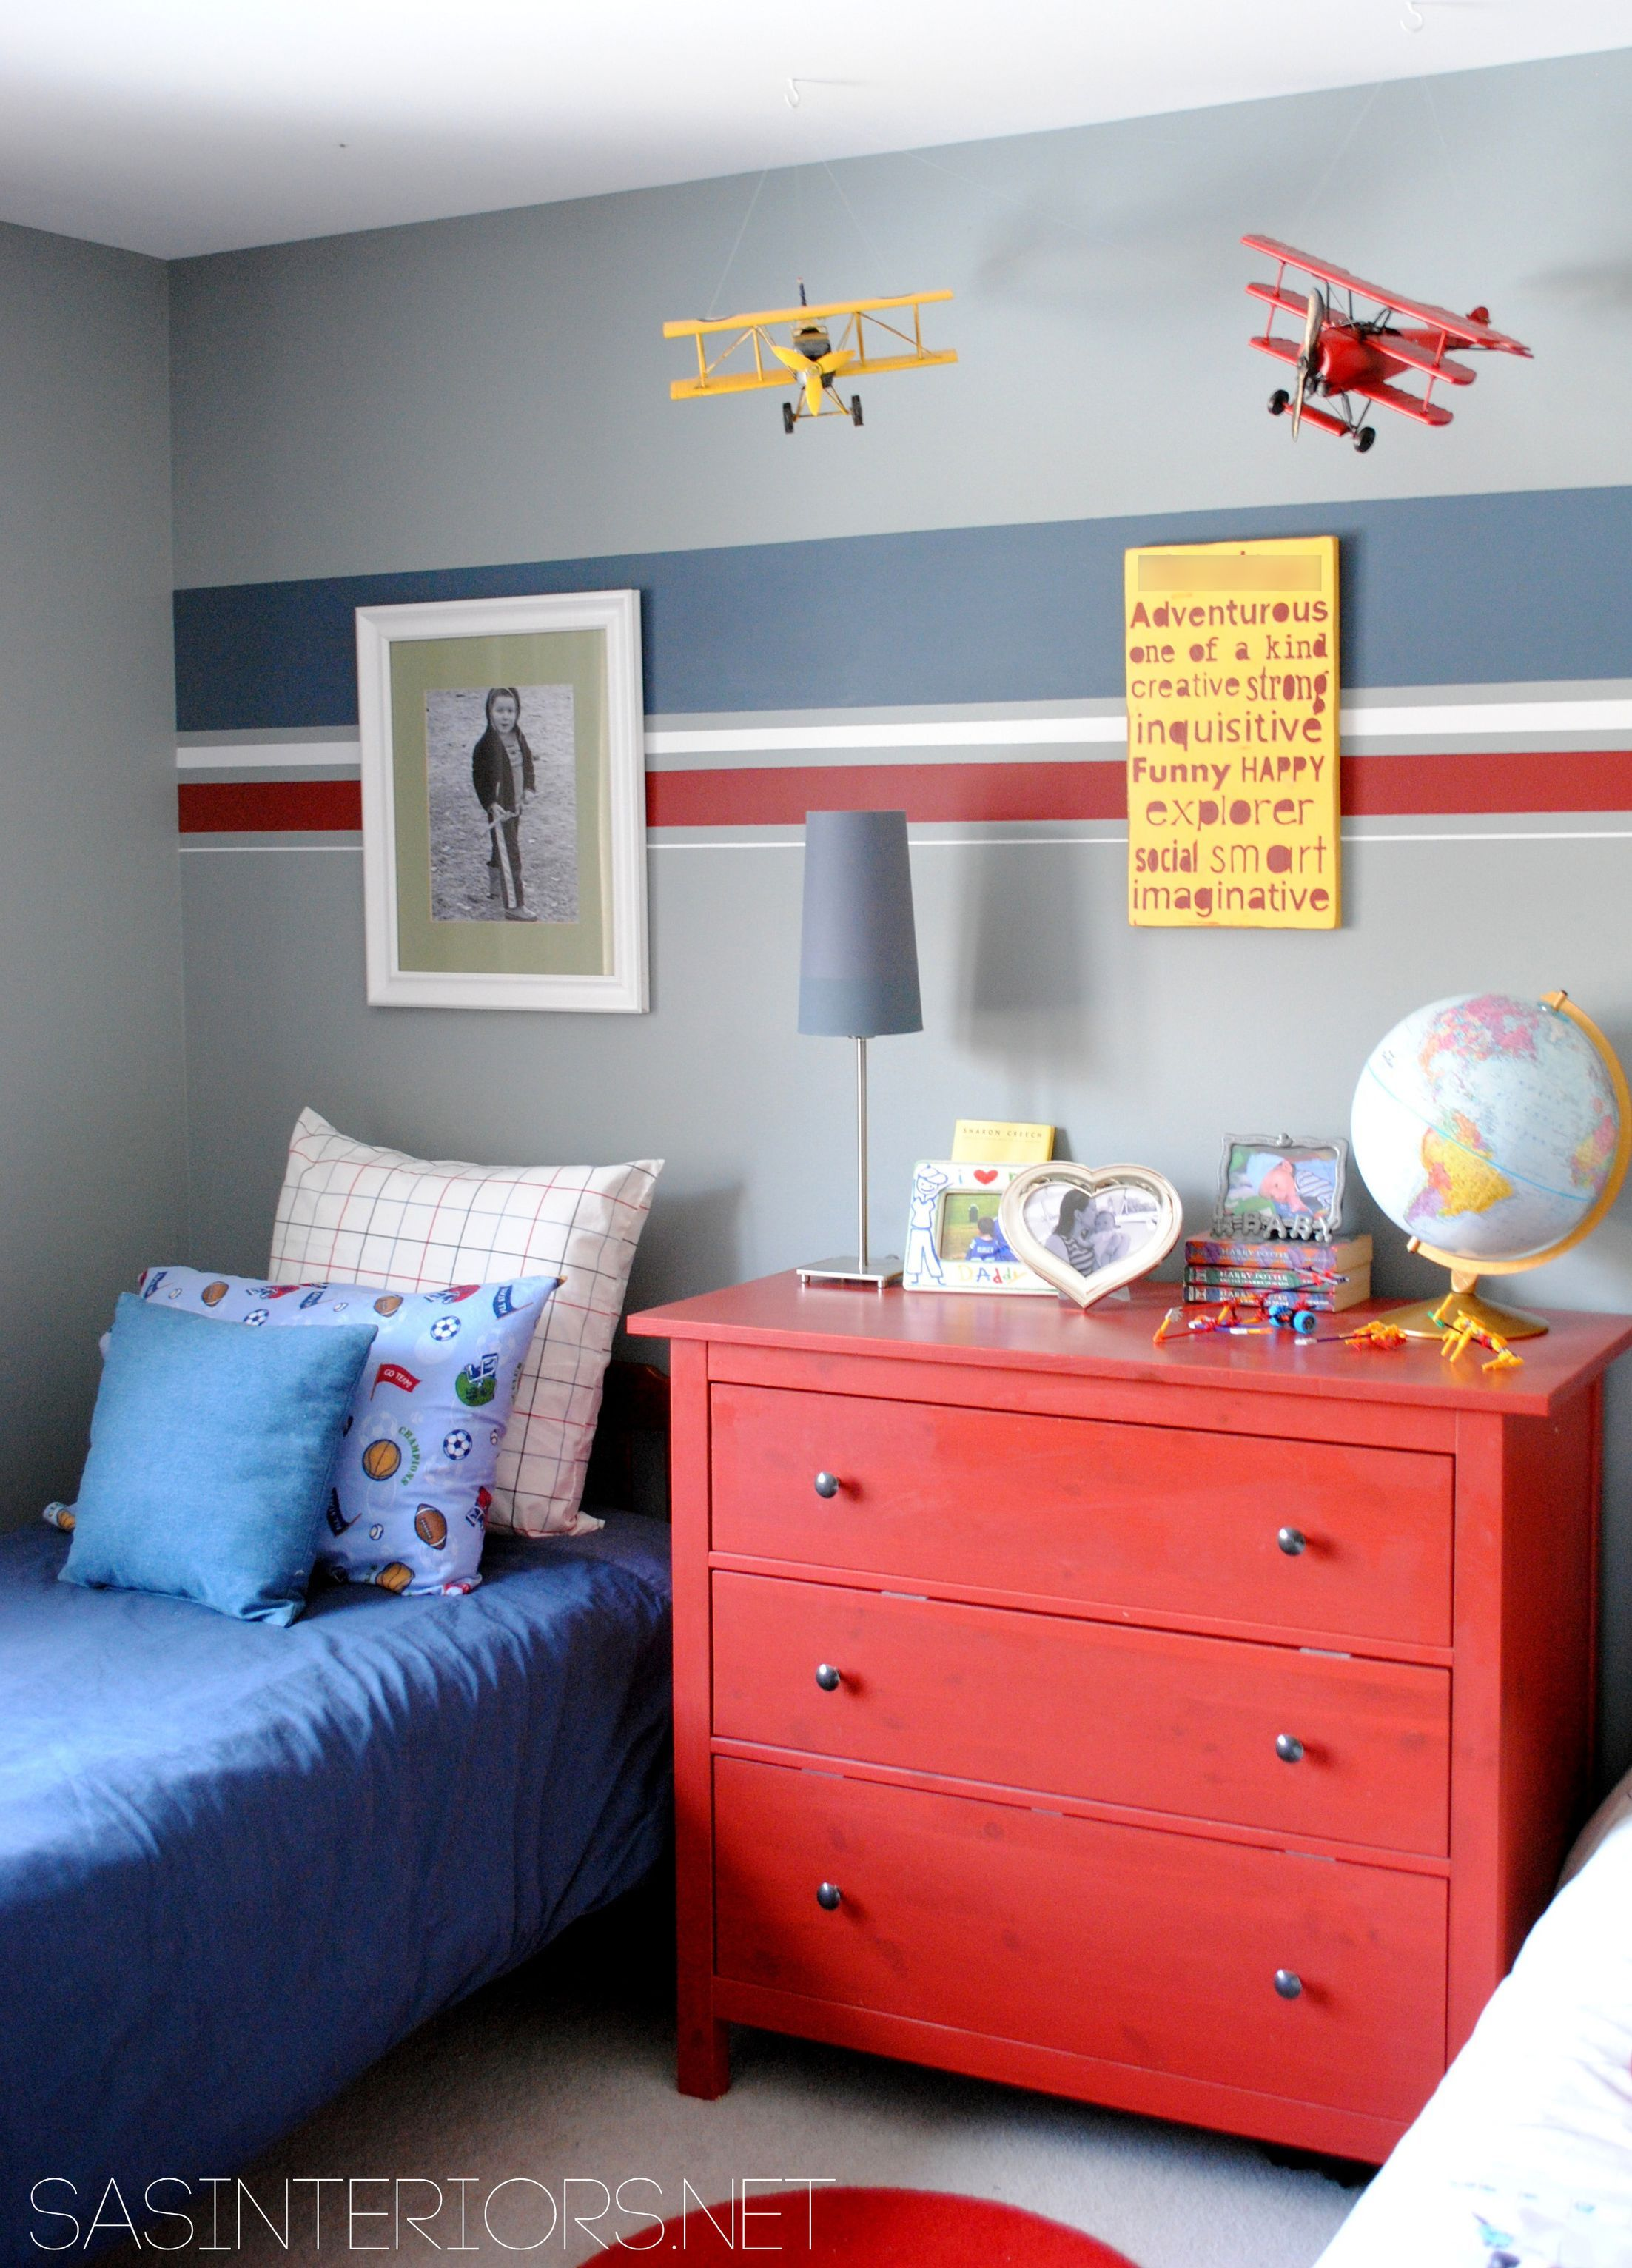 Bedrooms for boys paint colors - How To Make Three Paint Colors Work In A Room Bedroom Imagesbedroom Ideas Boys